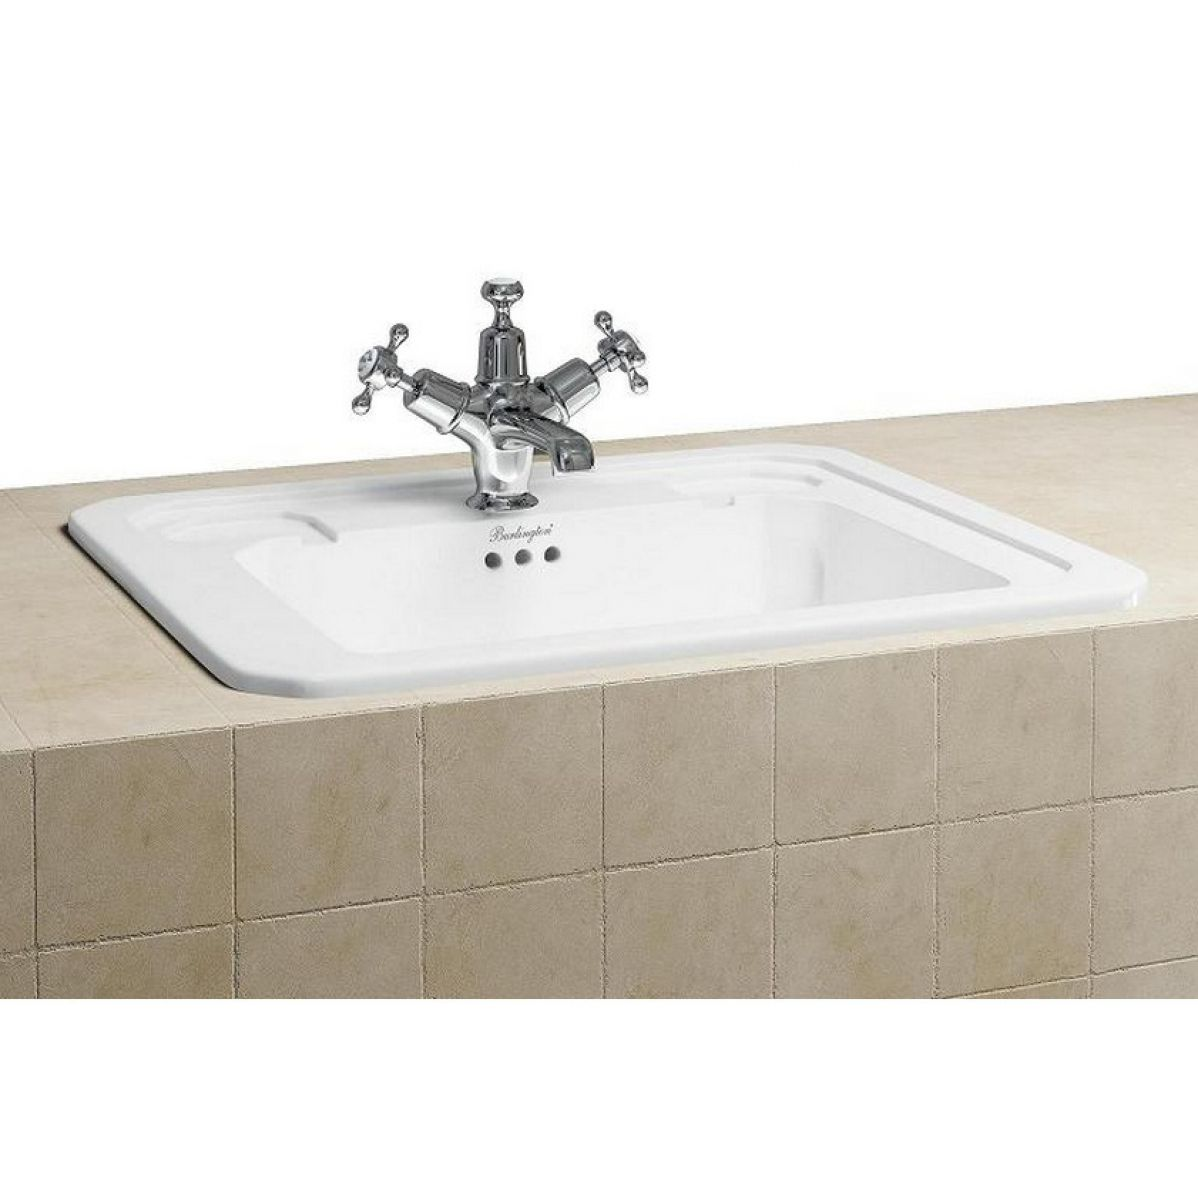 ... basin home bathrooms basins and sinks recessed semi recessed basins